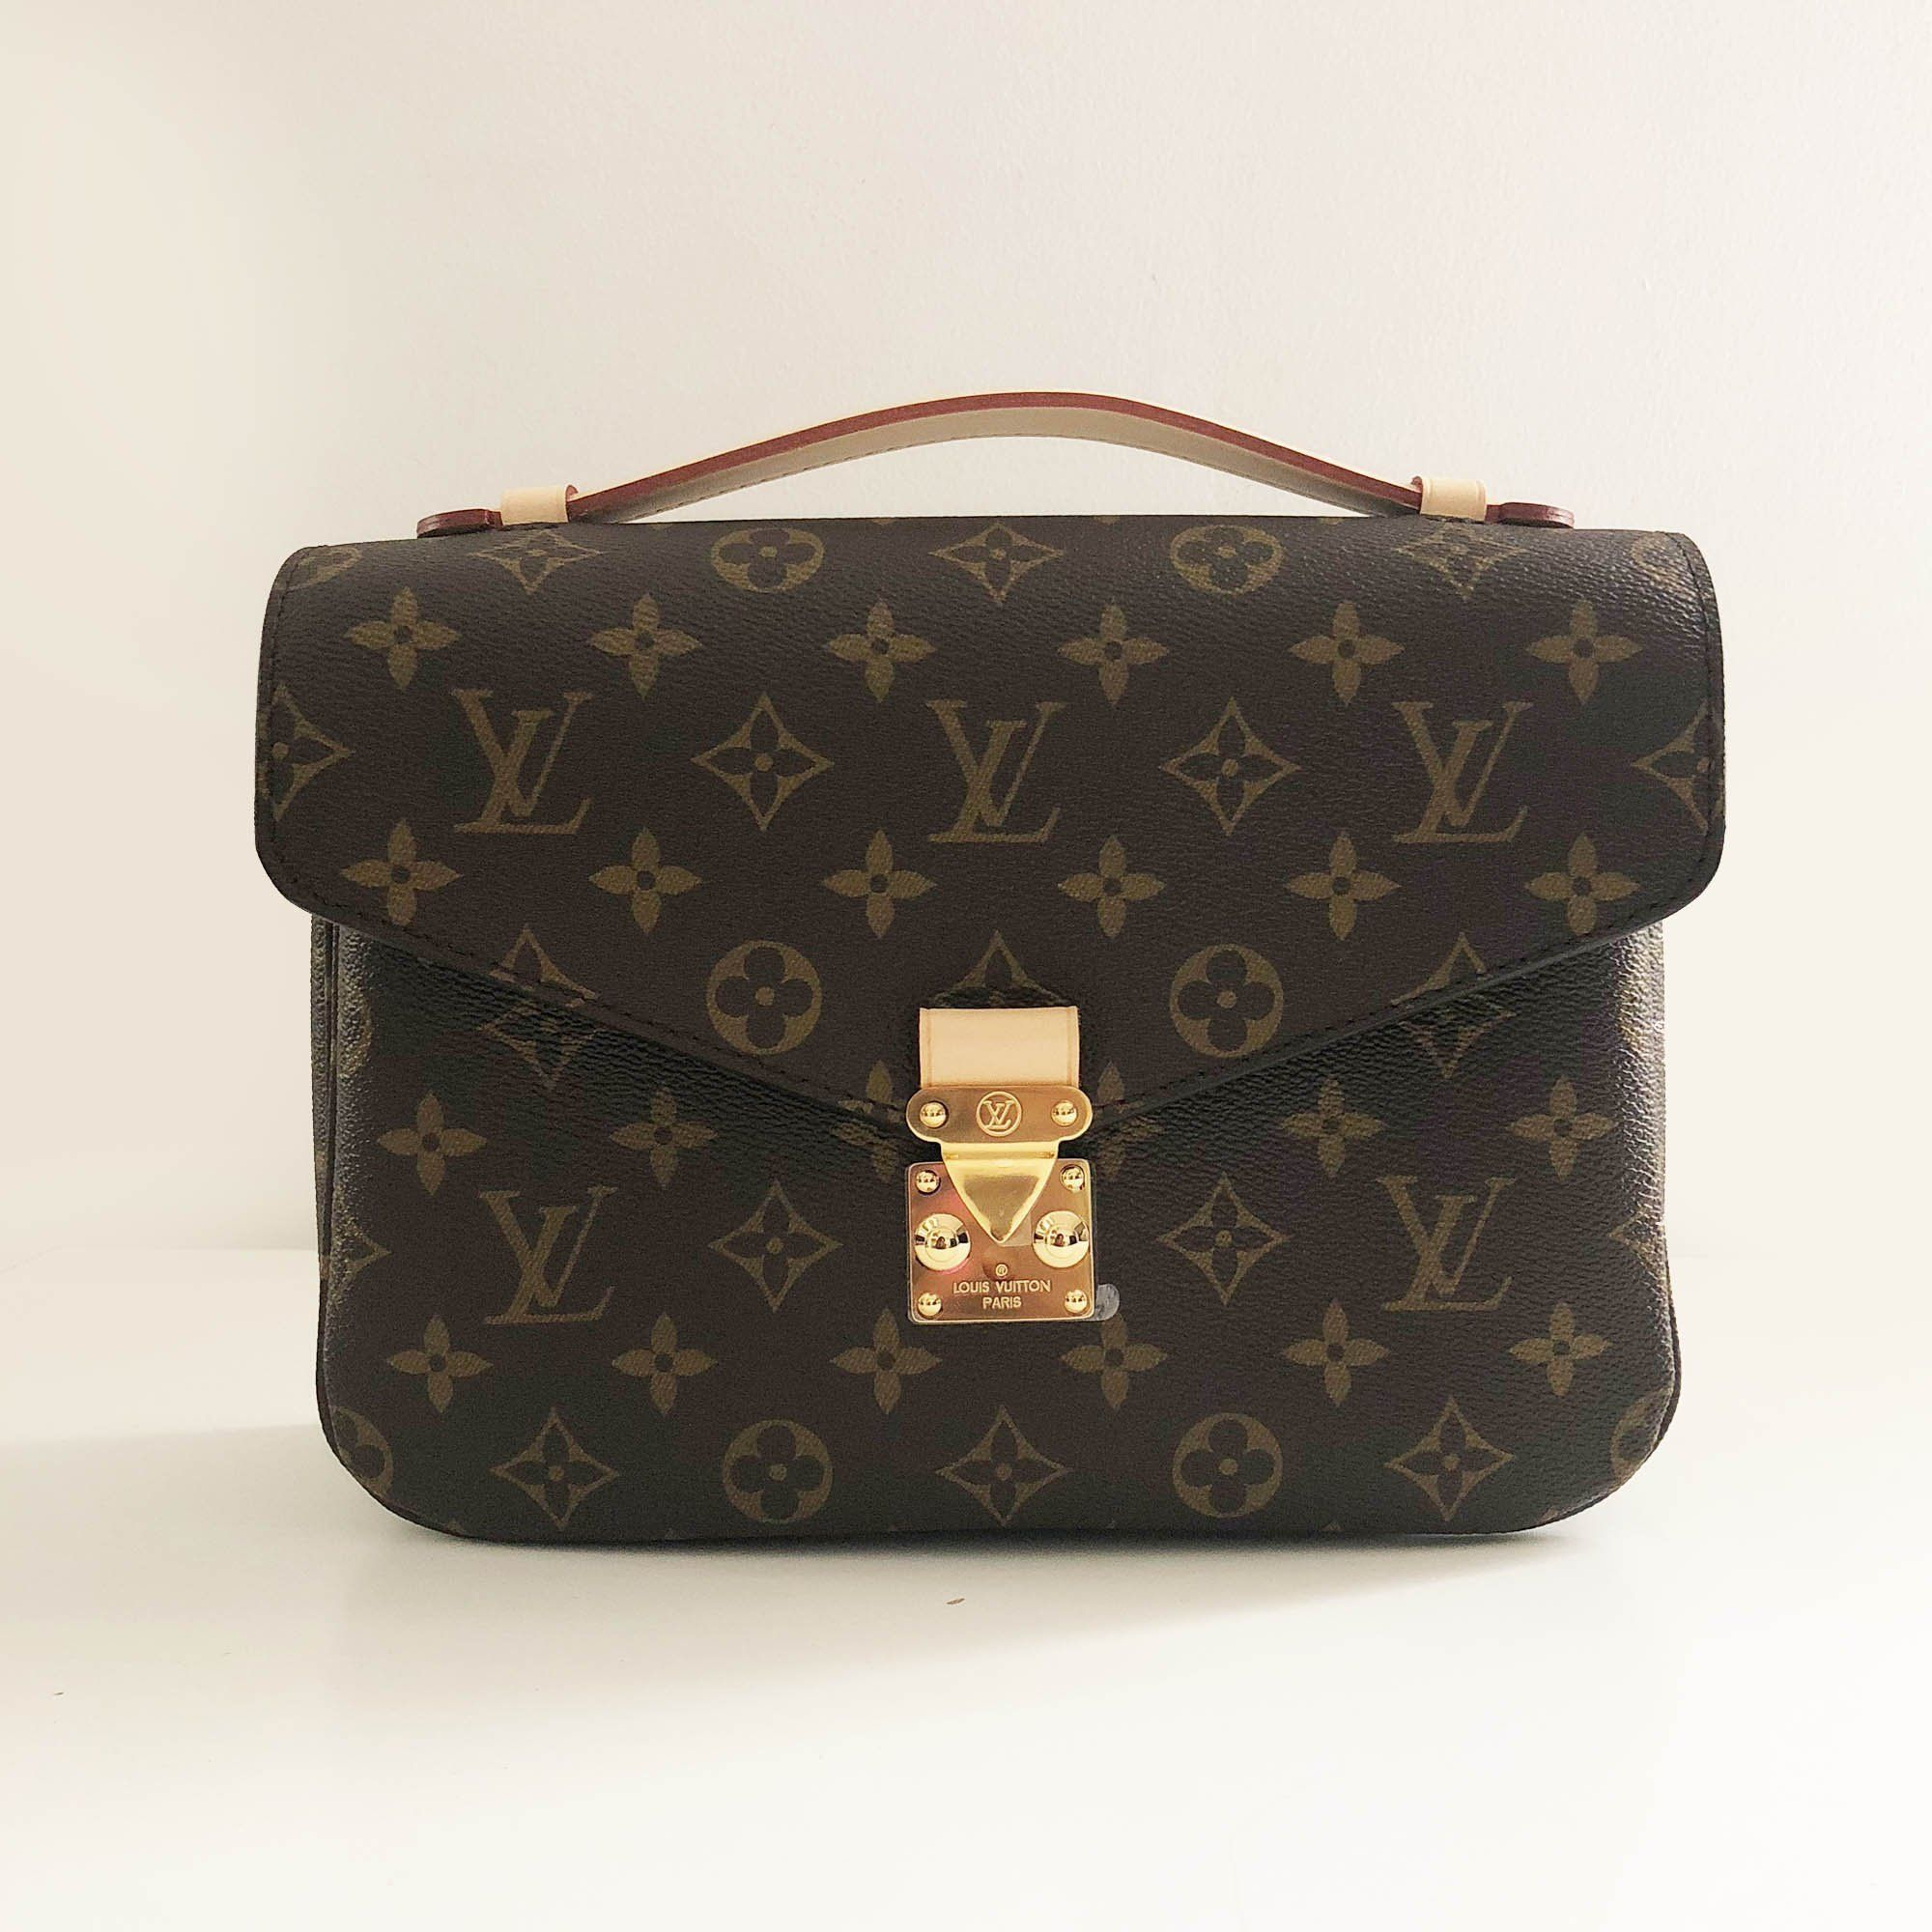 b1f2758eead4 Louis Vuitton Alma monogram Bag – Garderobe